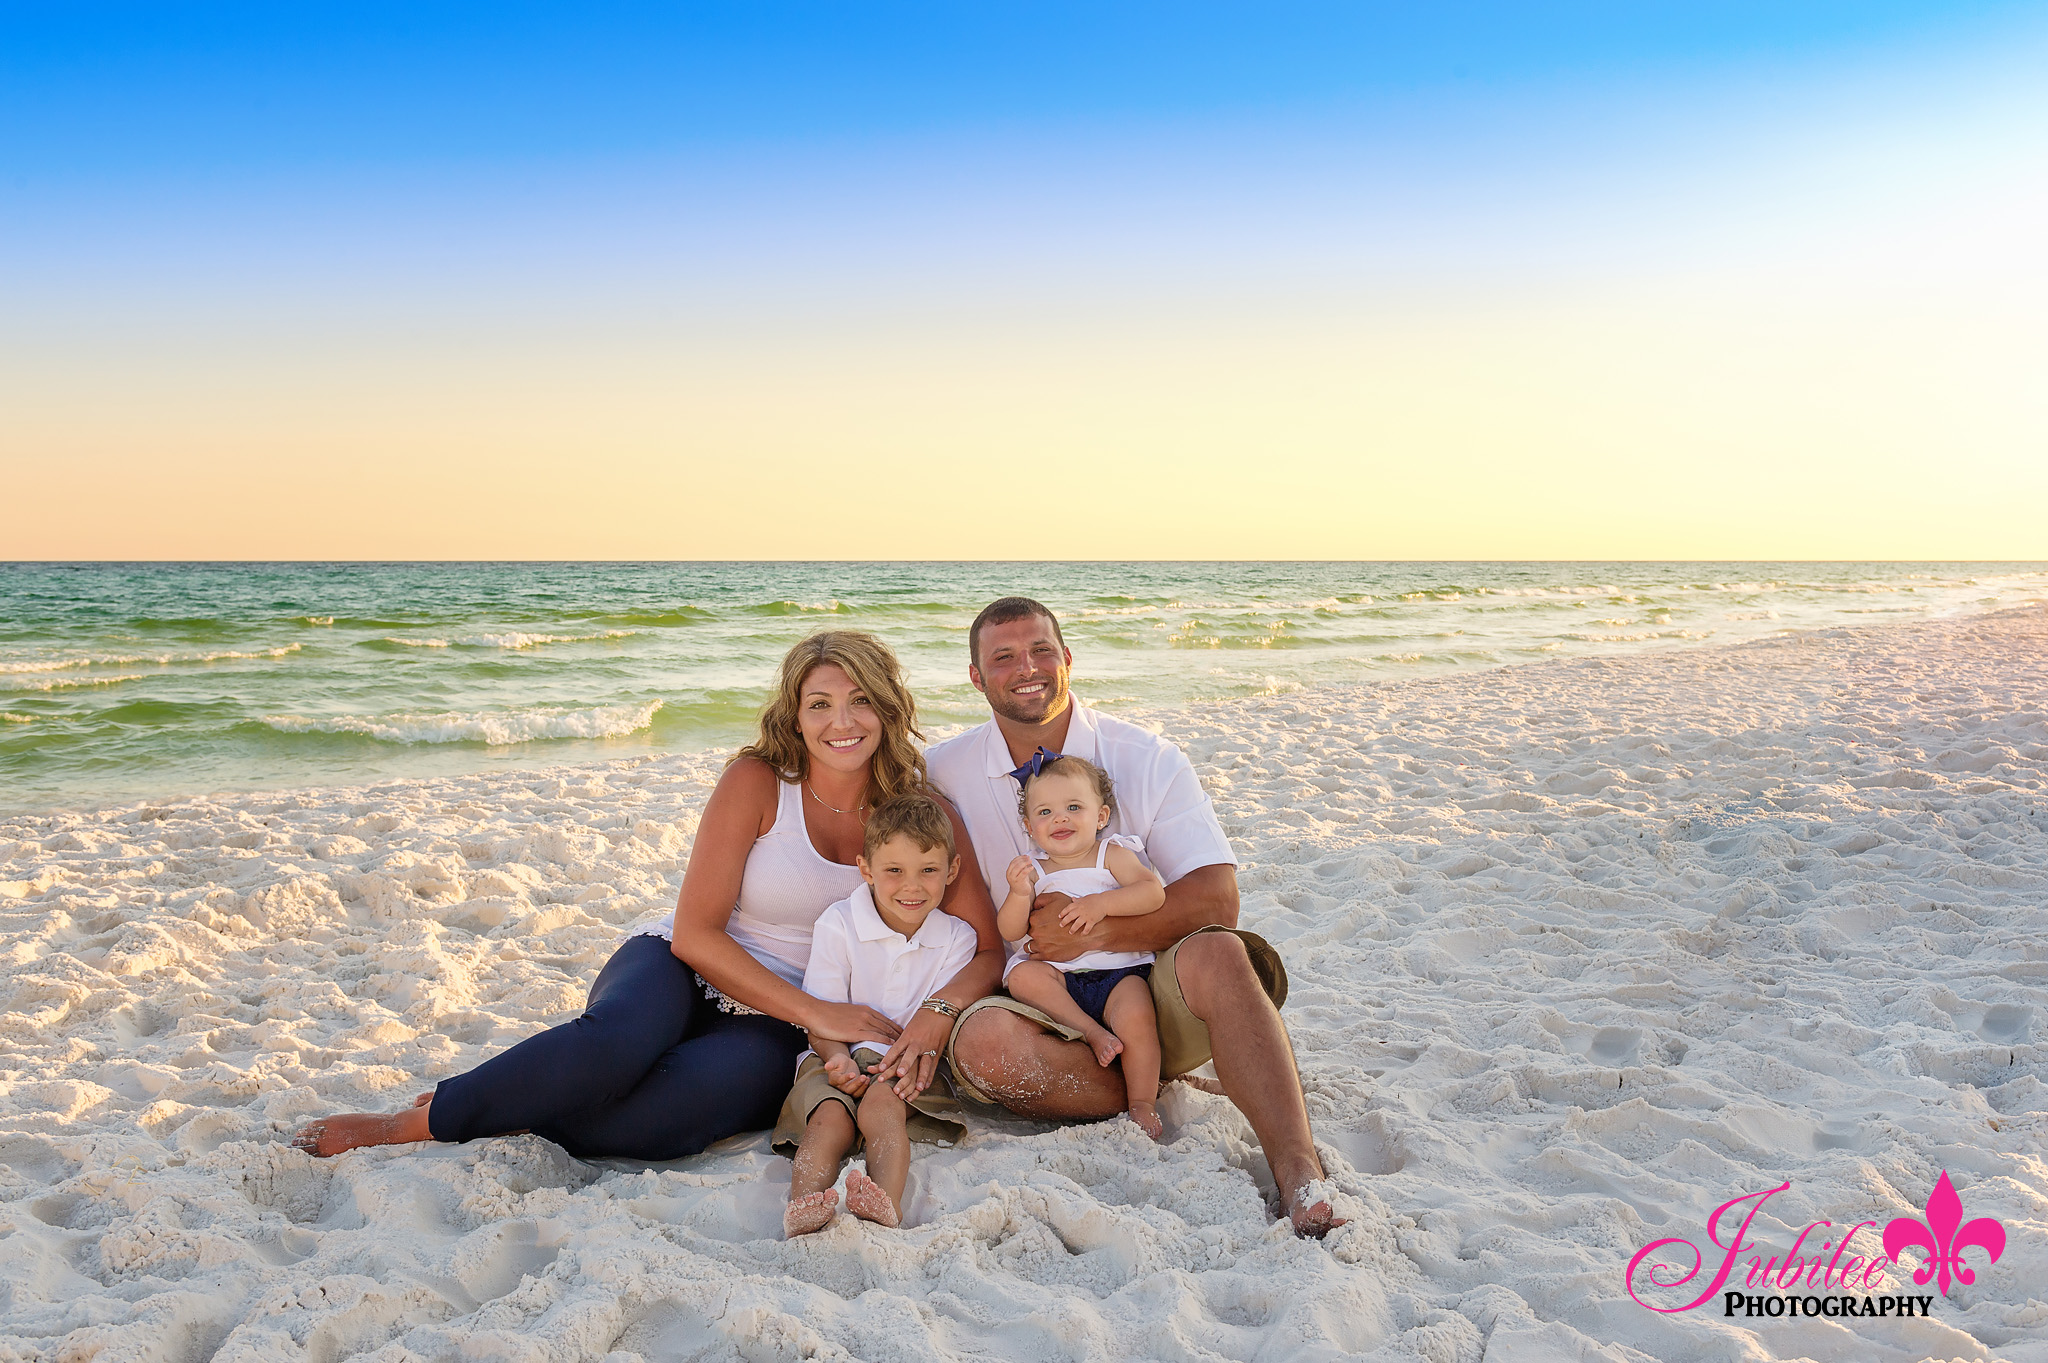 Destin_Beach_Photographer_0636